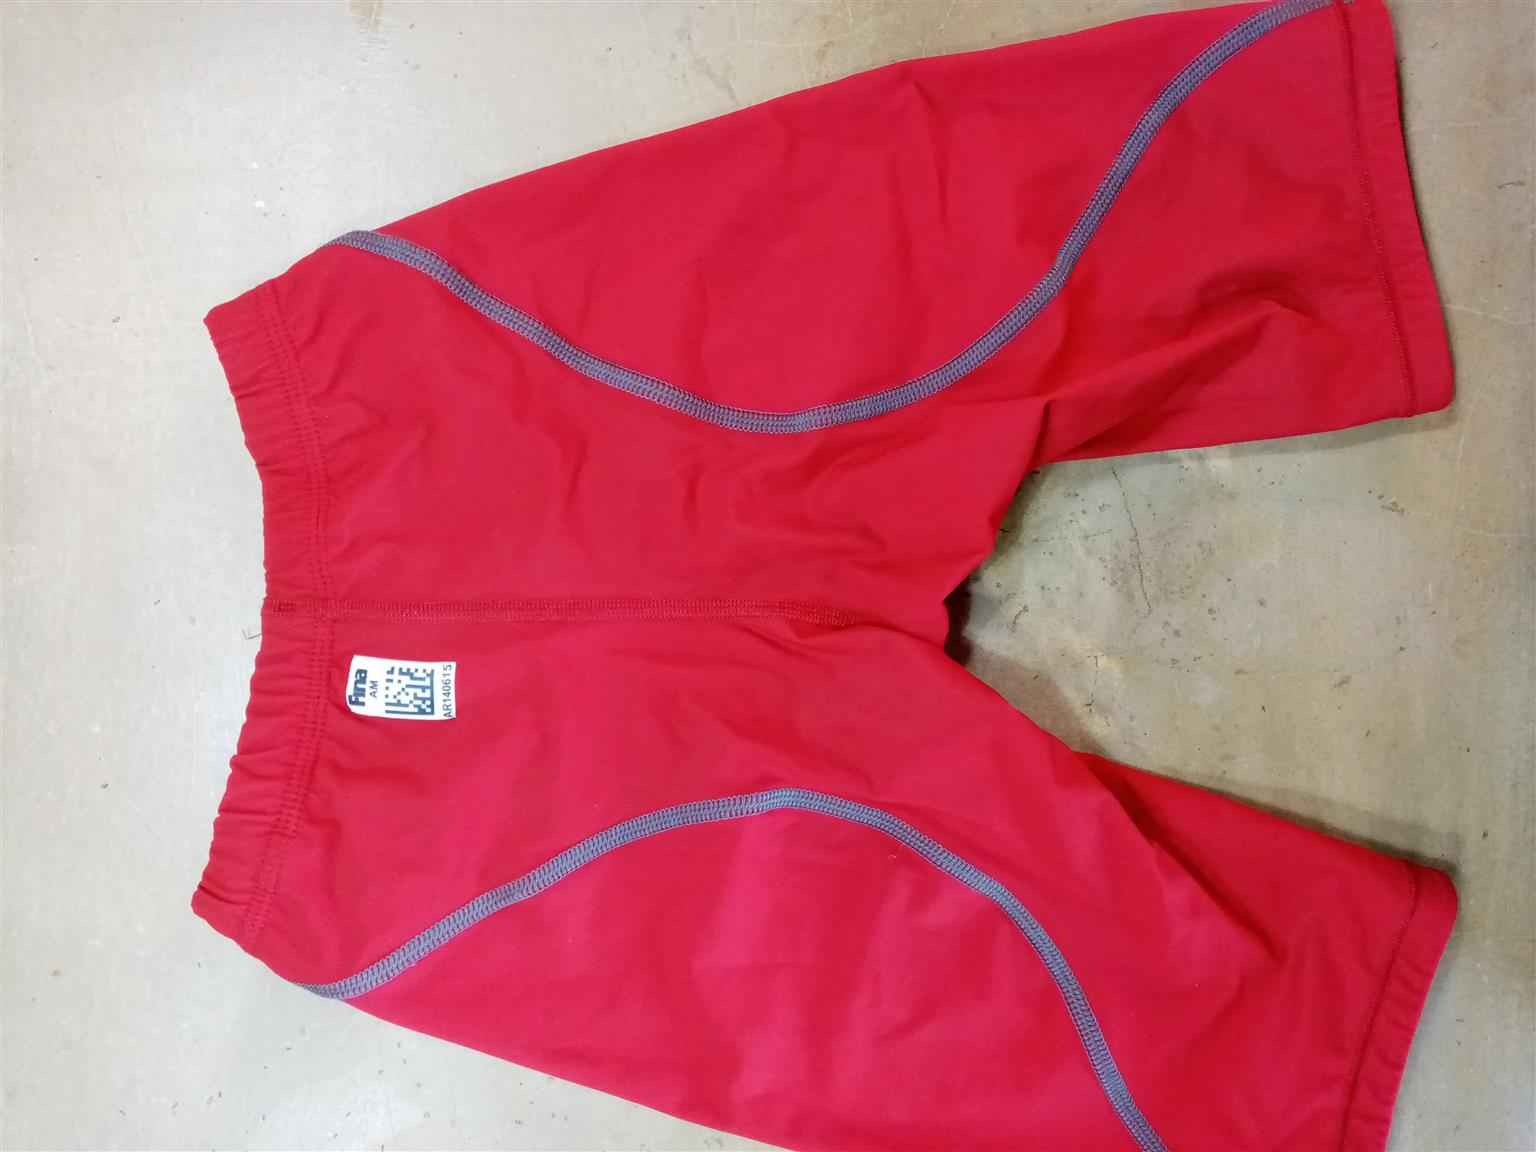 Boys Arena Powerskin ST 2.0 Jammer swimsuit for sale